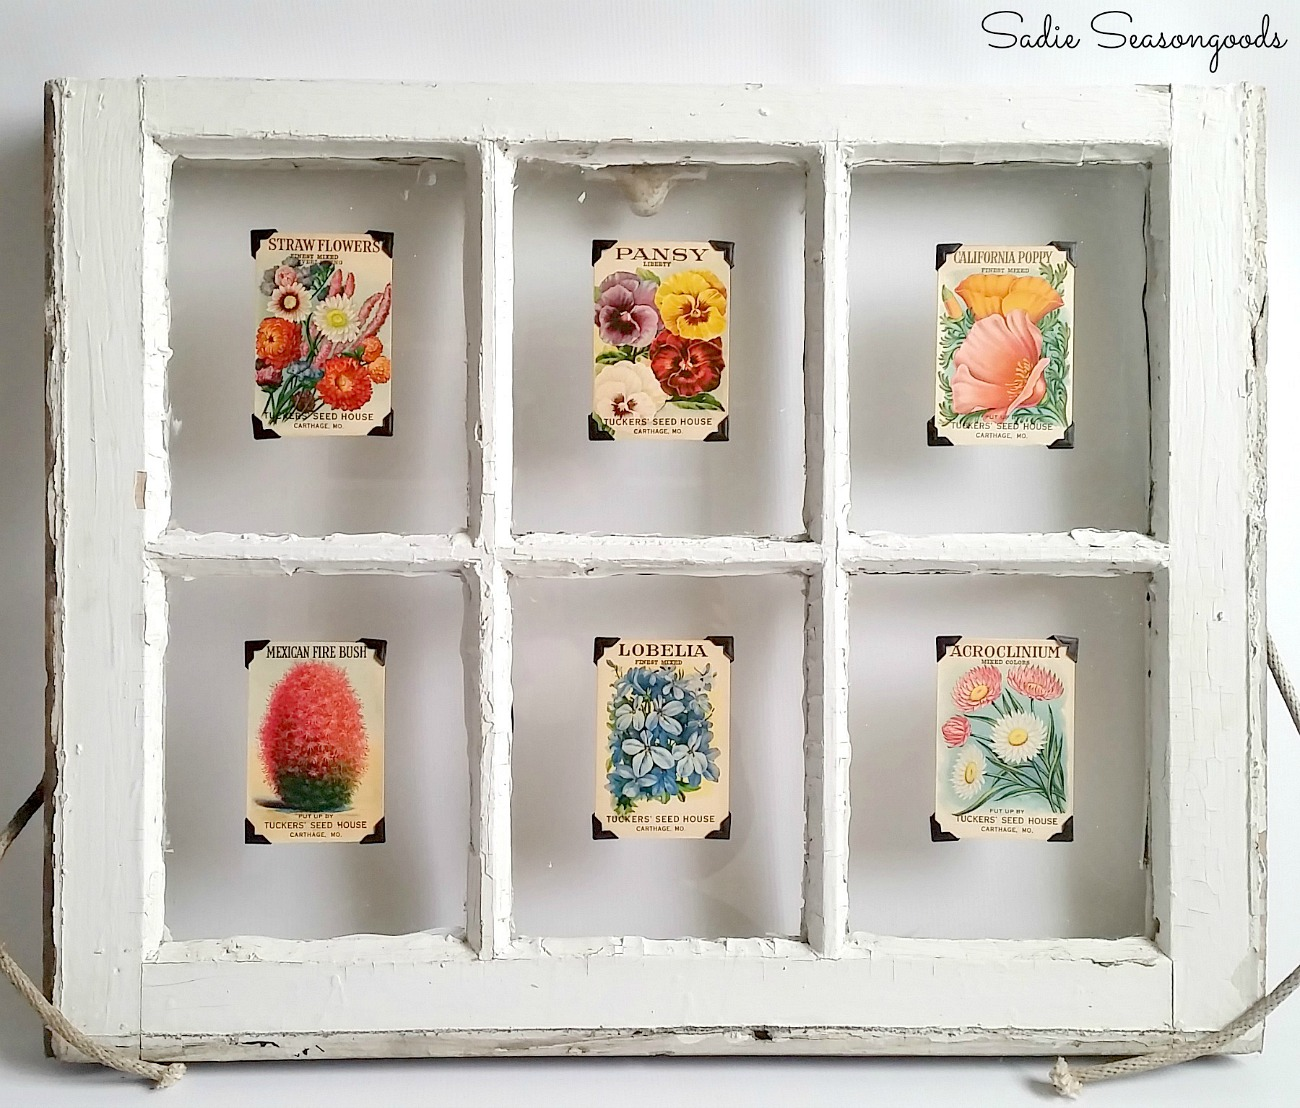 Window Pane Decor & Flower Art with an Old Window Frame